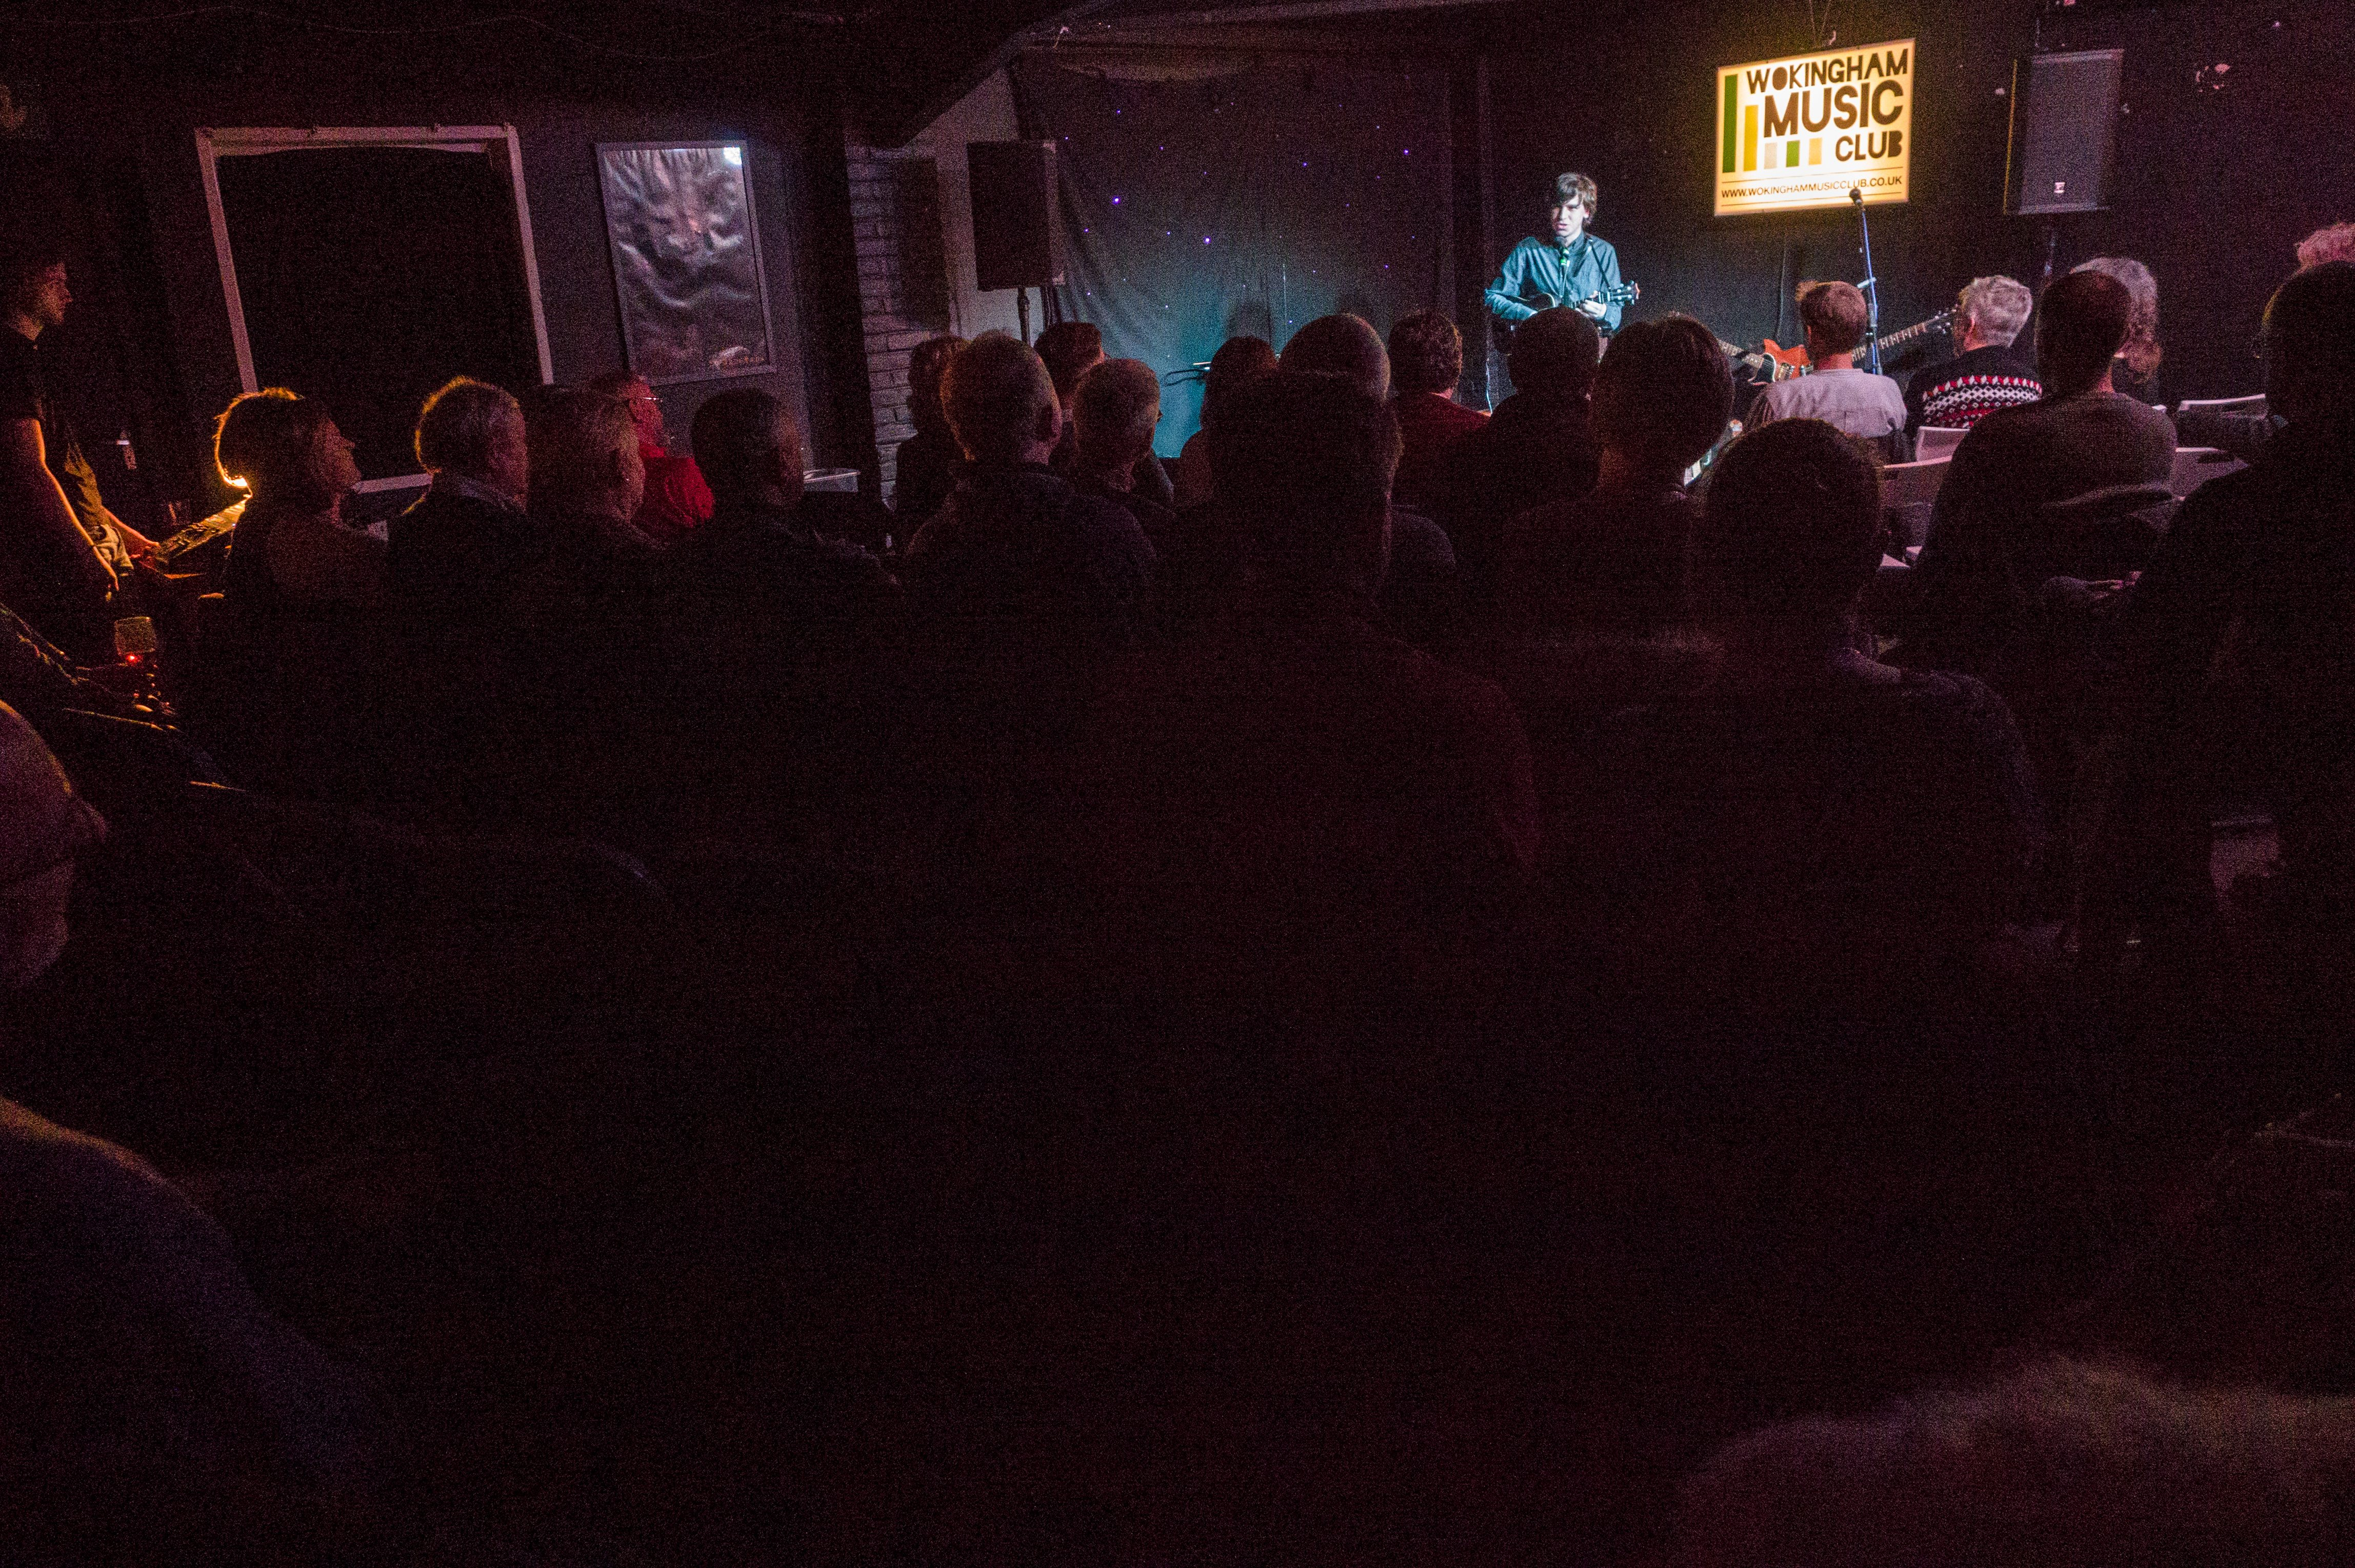 Matthew entertains a crowd at the Wokingham Music Club, as a support act for John Otway